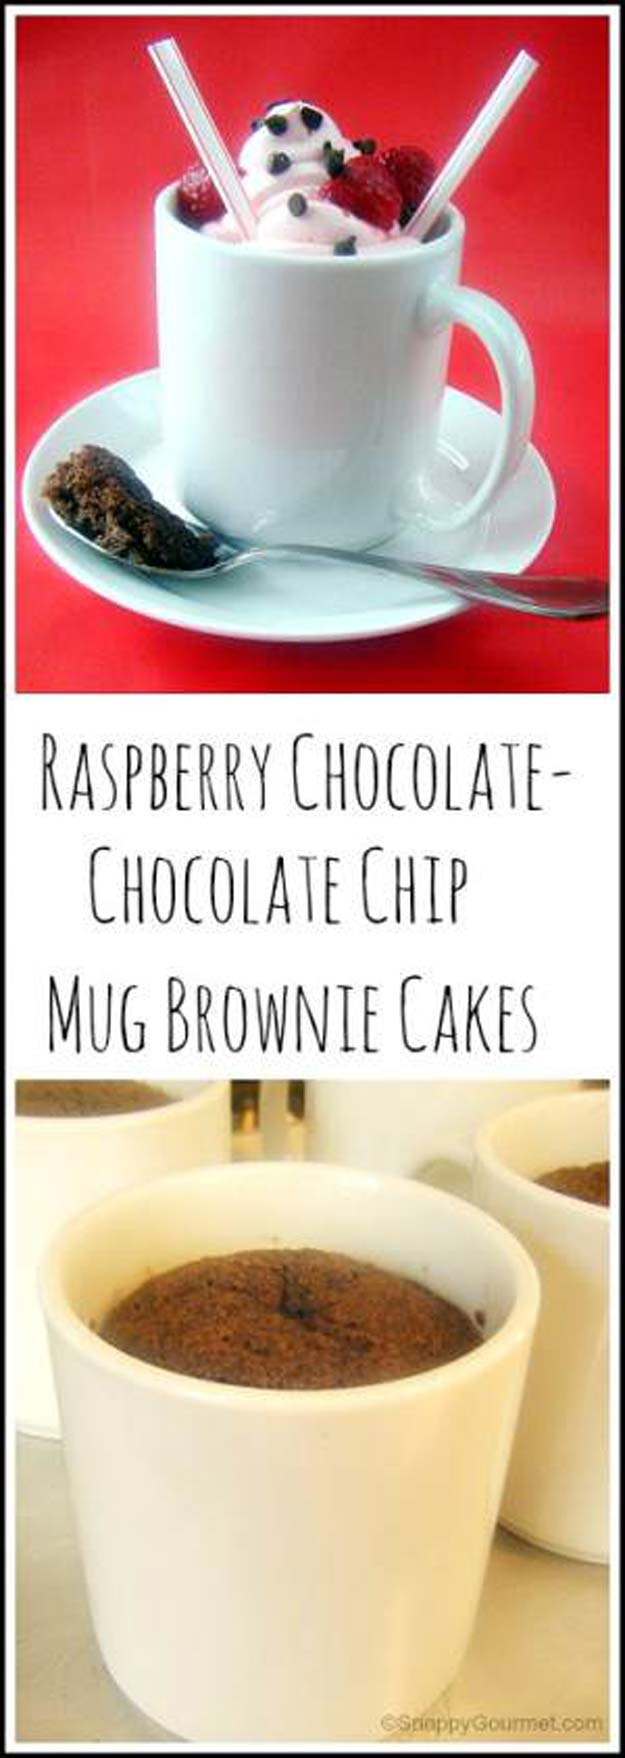 Easy Mug Cake Recipes - Raspberry Chocolate-Chocolate Chip Mug Brownie Cakes - Best Microwave Cakes and Ideas for Baking Ckae in The Microwave - Chocolate, Vanilla, Healthy, Snickerdoodle, Peanut Butter, Bownie and Nutella - Step by Step Tutorials and Instructions - Besy DIY Projects and Recipes for Teens and Teenagers - http://diyprojectsforteens.com/easy-mug-cake-recipes